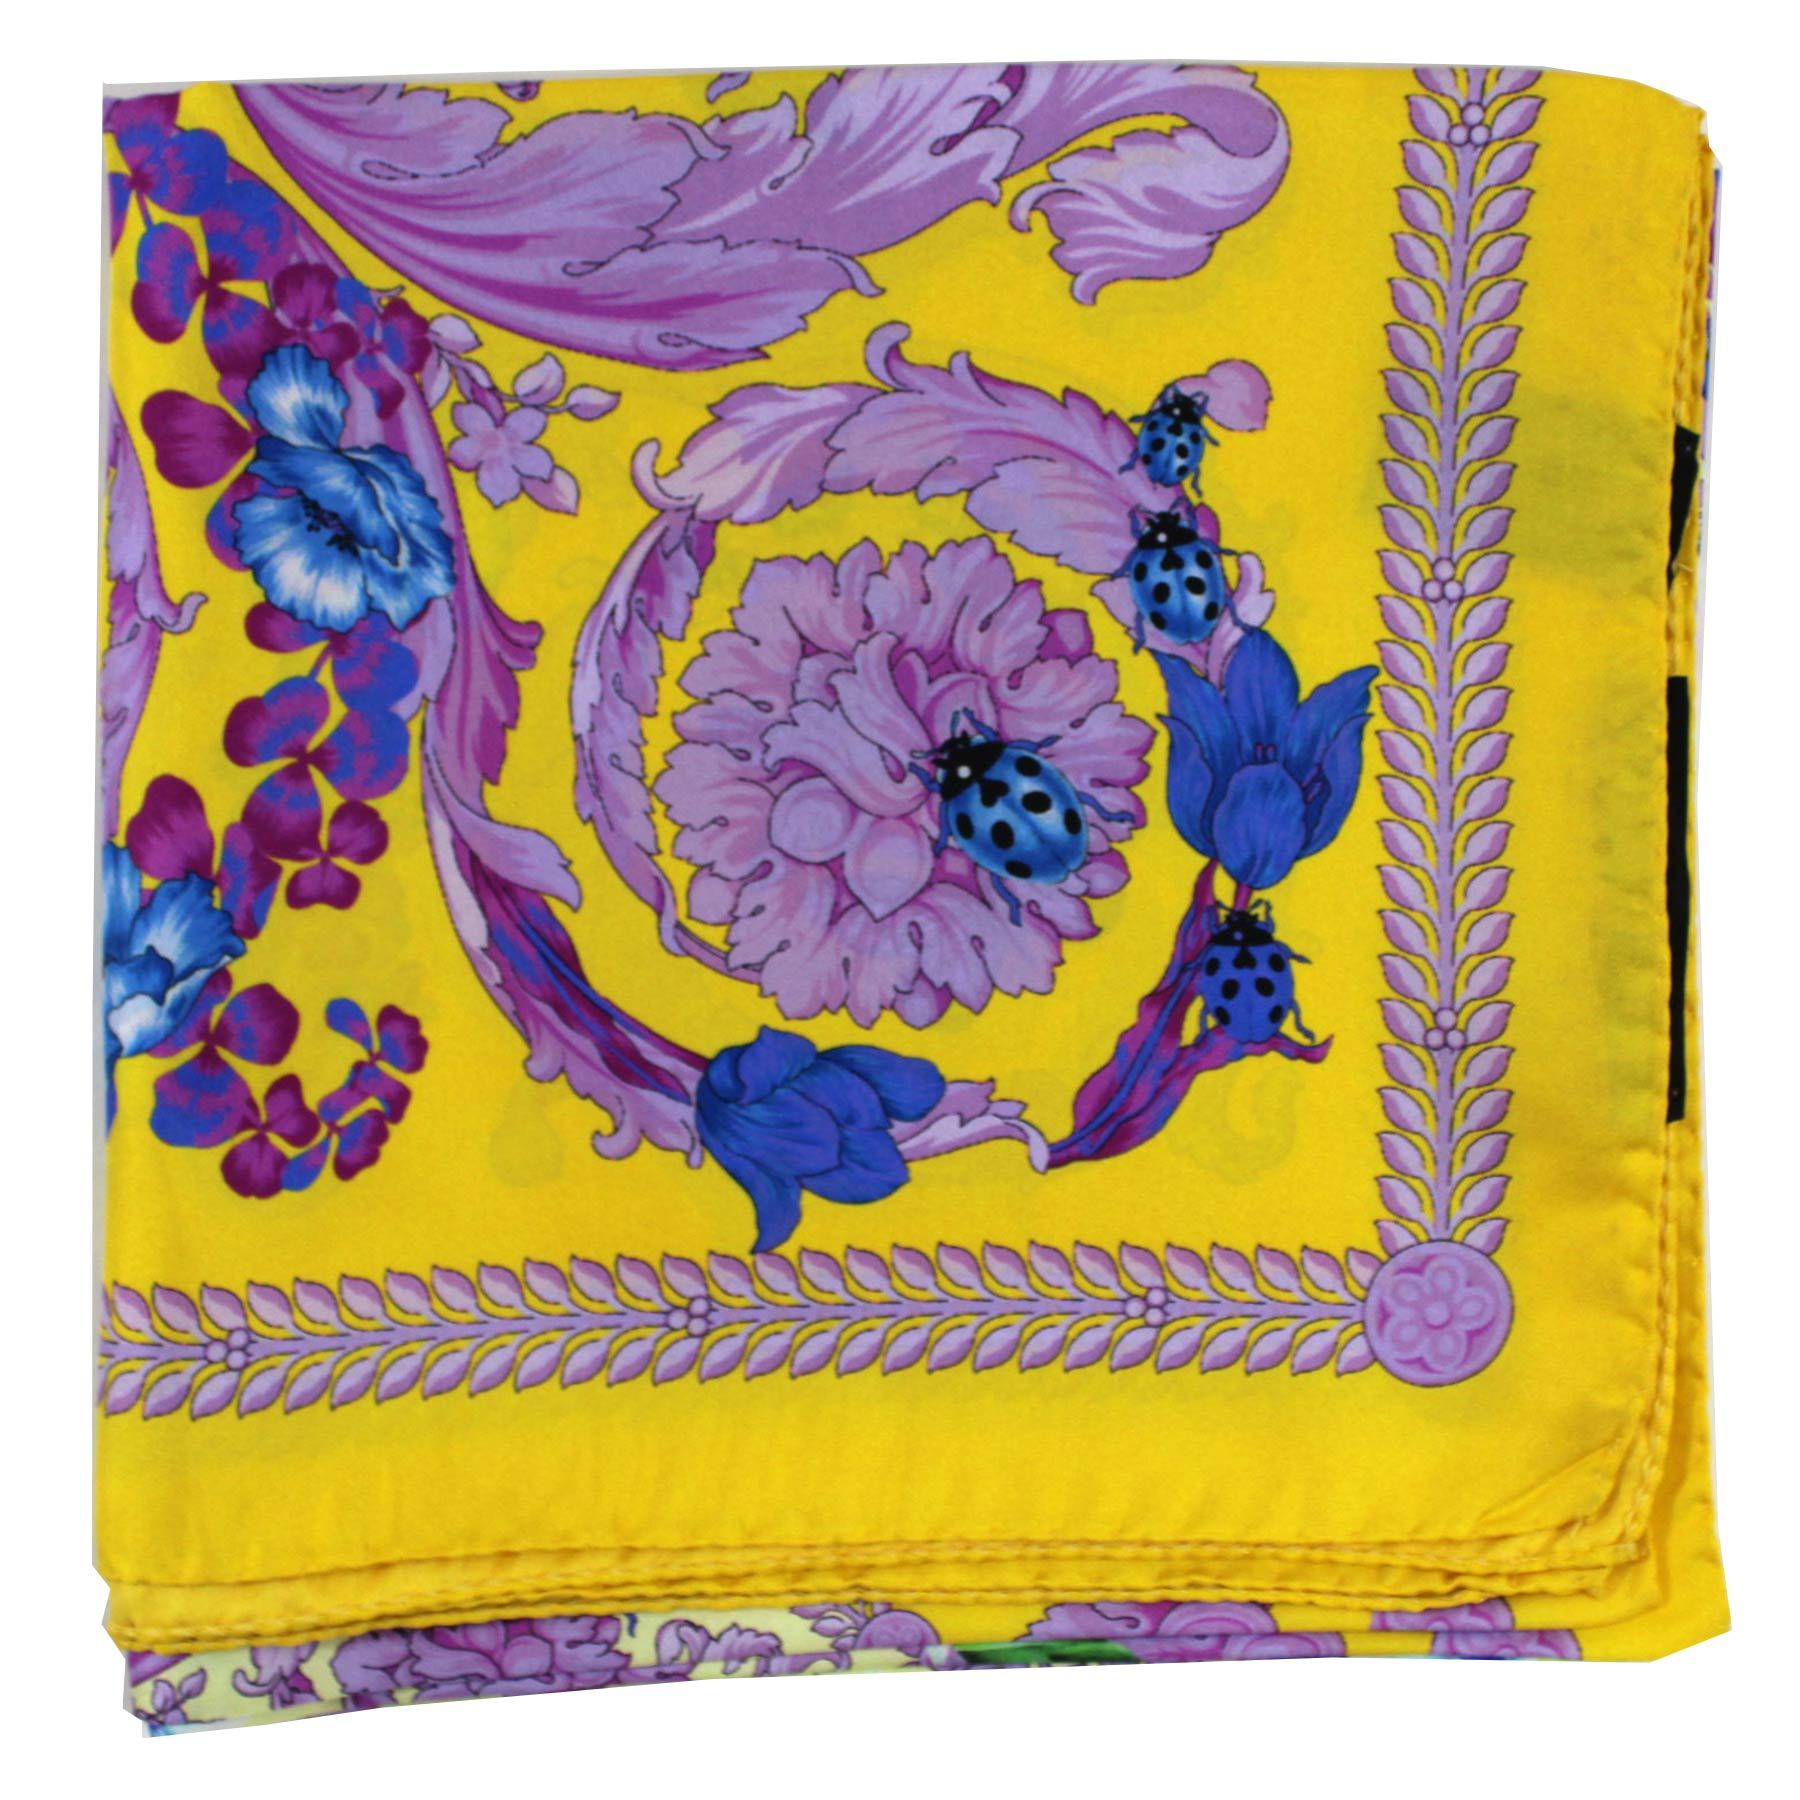 Versace Scarf Yellow Lilac Butterfly & Floral Design- Large Twill Silk Square Scarf